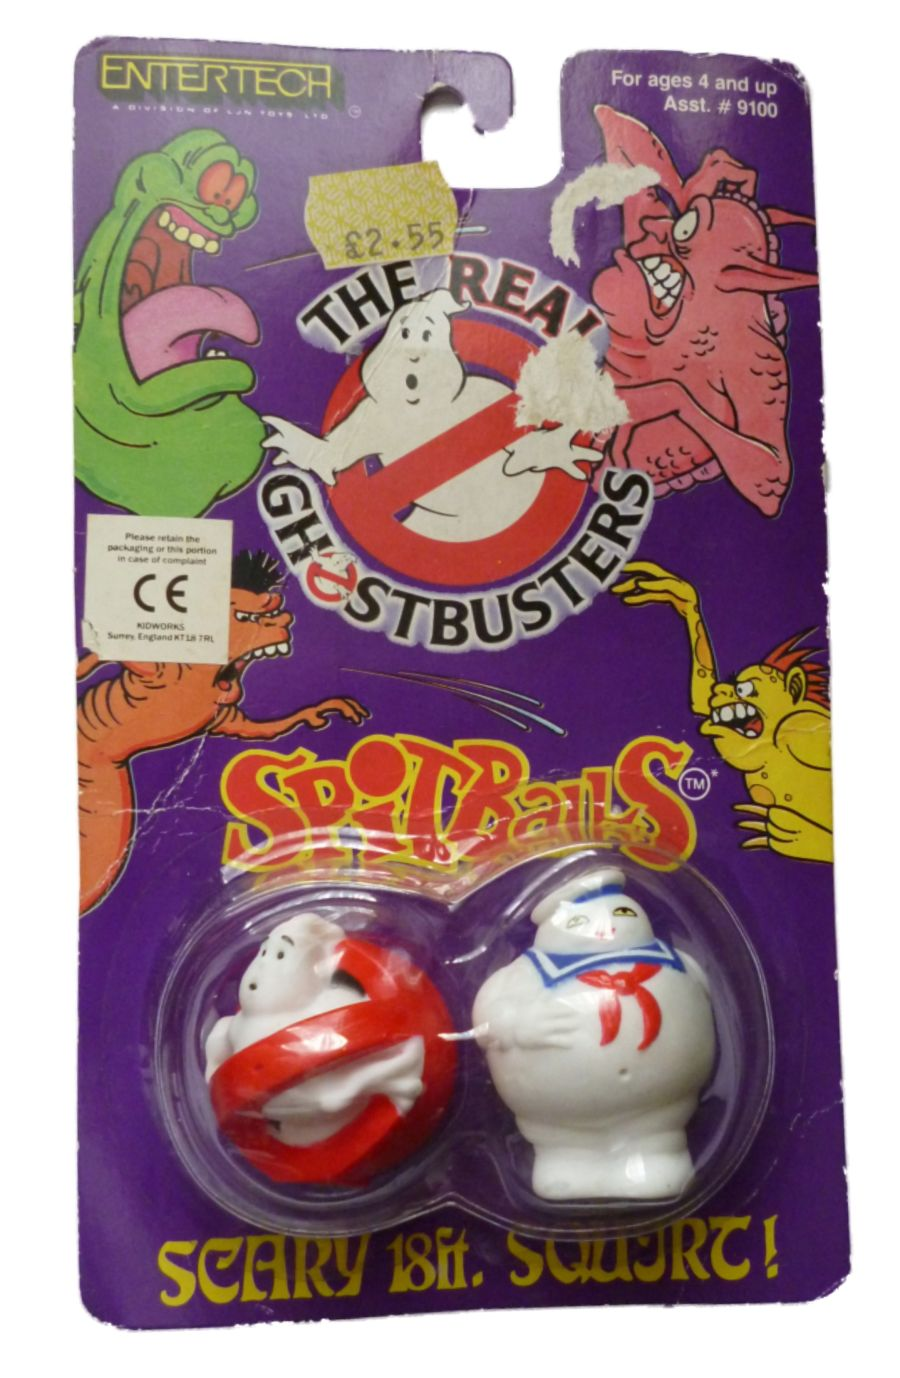 Original The Real Ghostbusters 1986 Entertech Spitballs Sealed